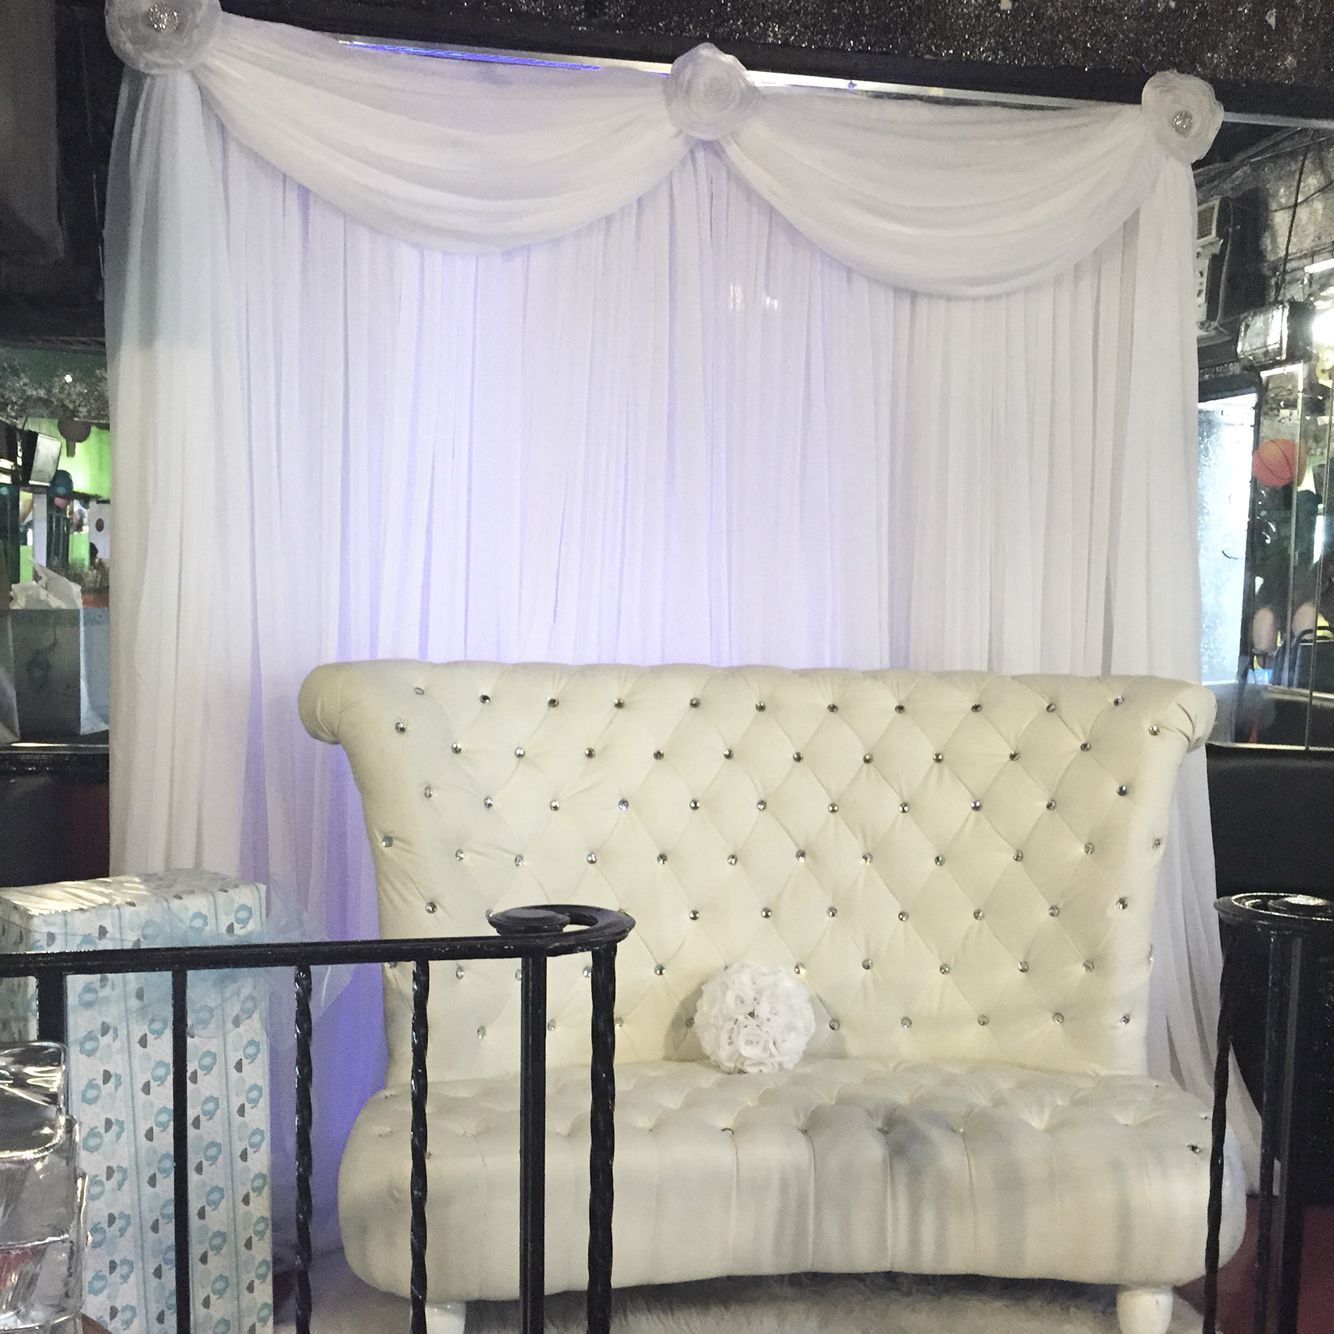 Diamond Chair And Backdrop Available For Rent Throne Chair Home Decor Chair